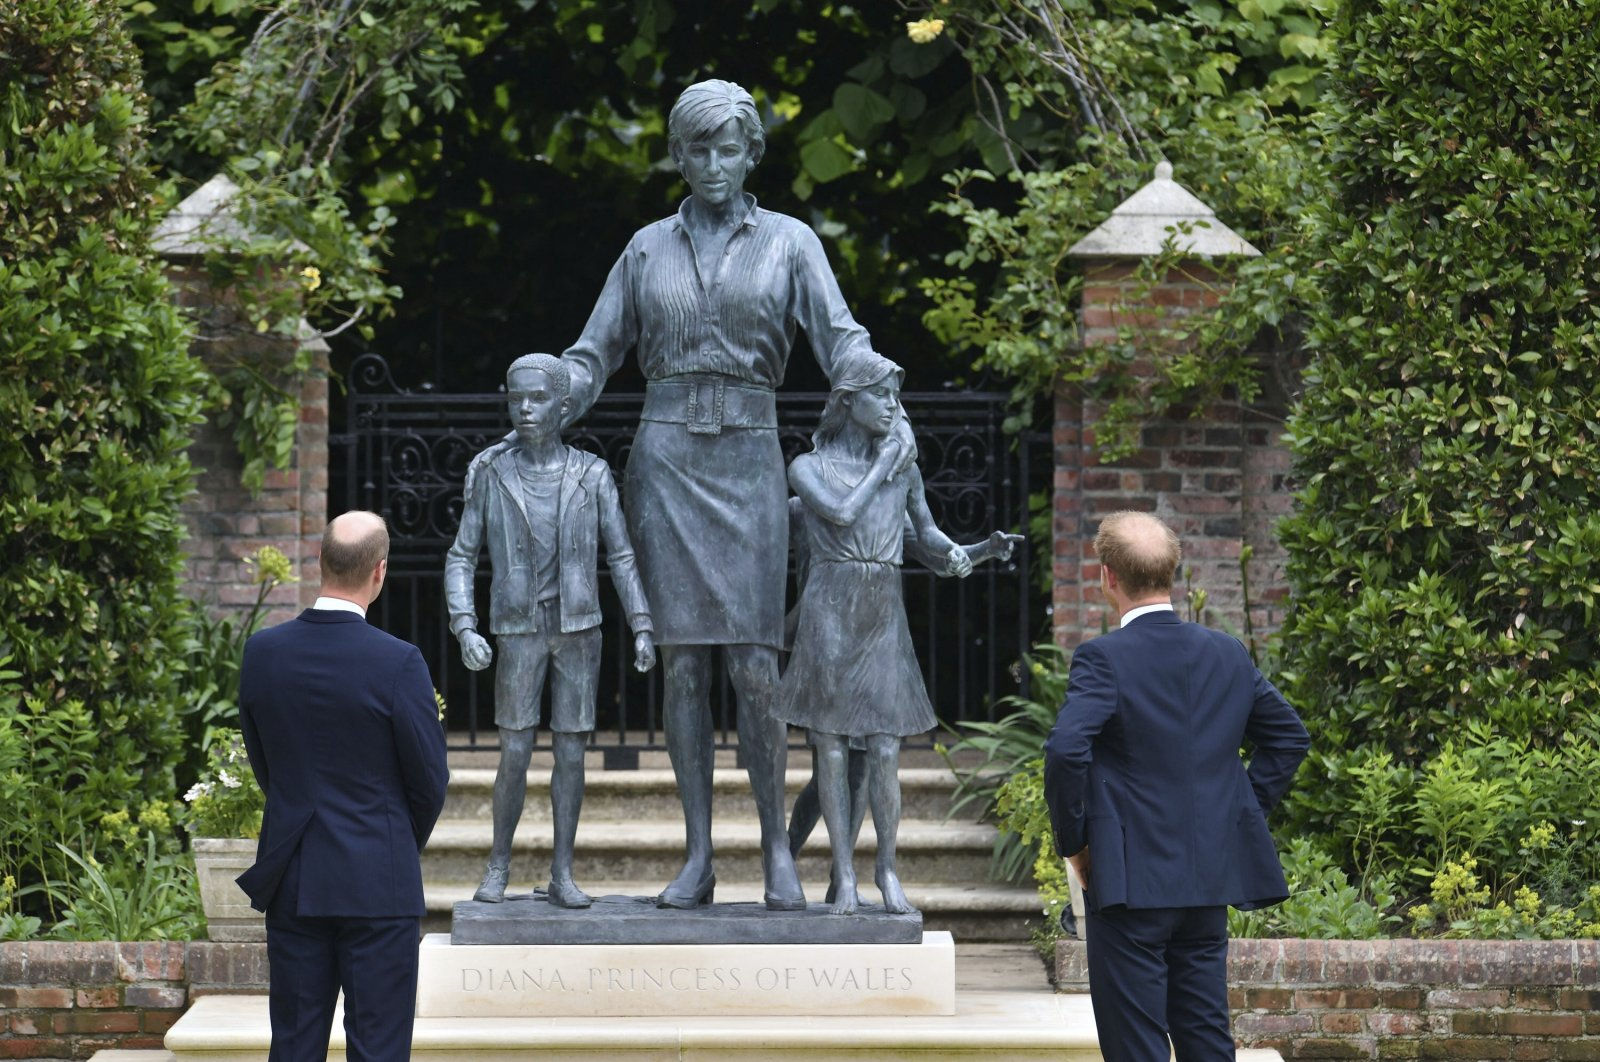 Britain's Prince William, (L) and Prince Harry unveil a statue they commissioned of their mother Princess Diana,  on what would have been her 60th birthday, in the Sunken Garden at Kensington Palace, London, U.K., July 1, 2021. (AP Photo)